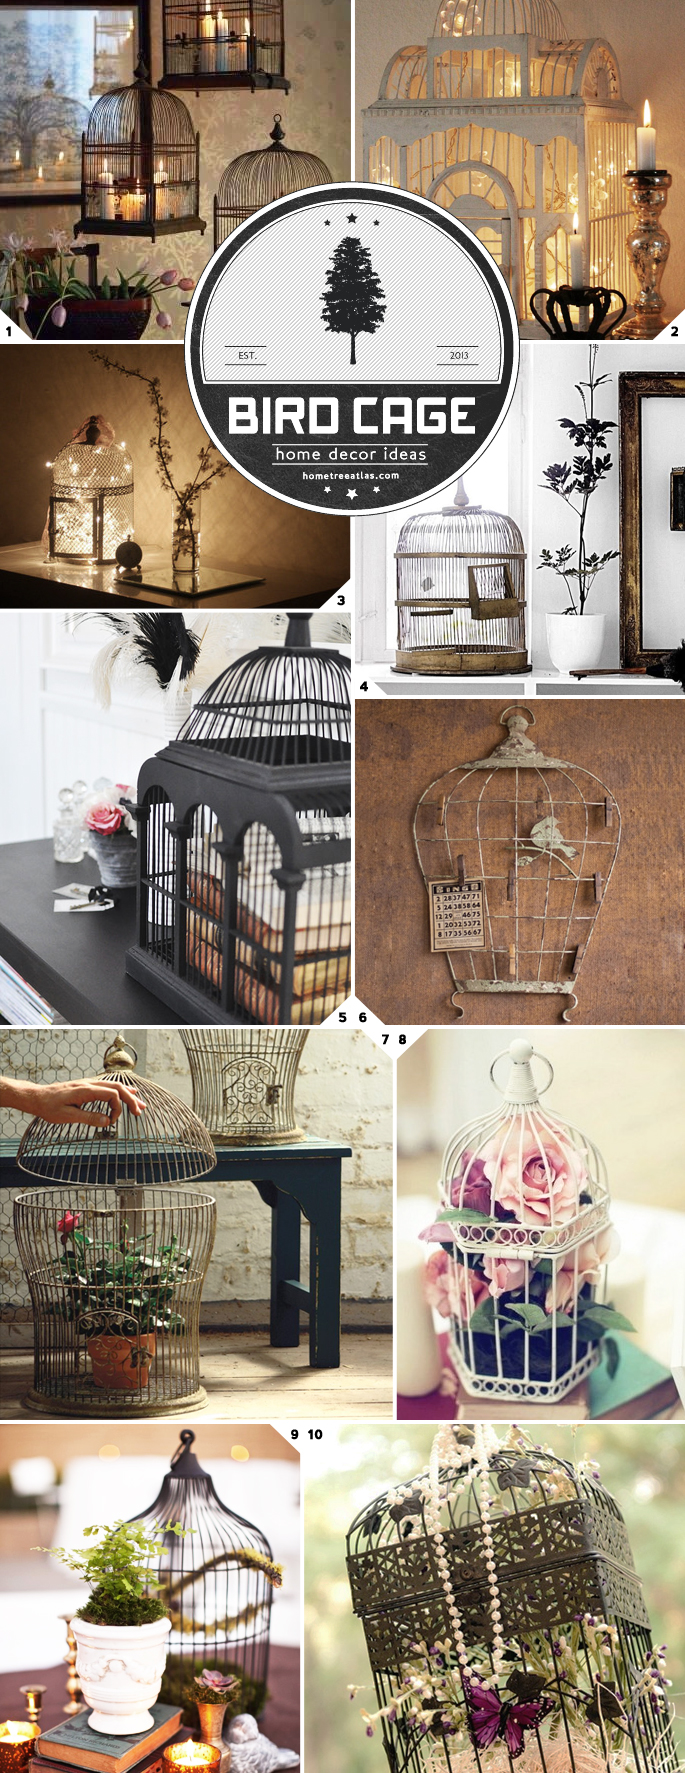 Home decor ideas using bird cages home tree atlas for Bird home decor